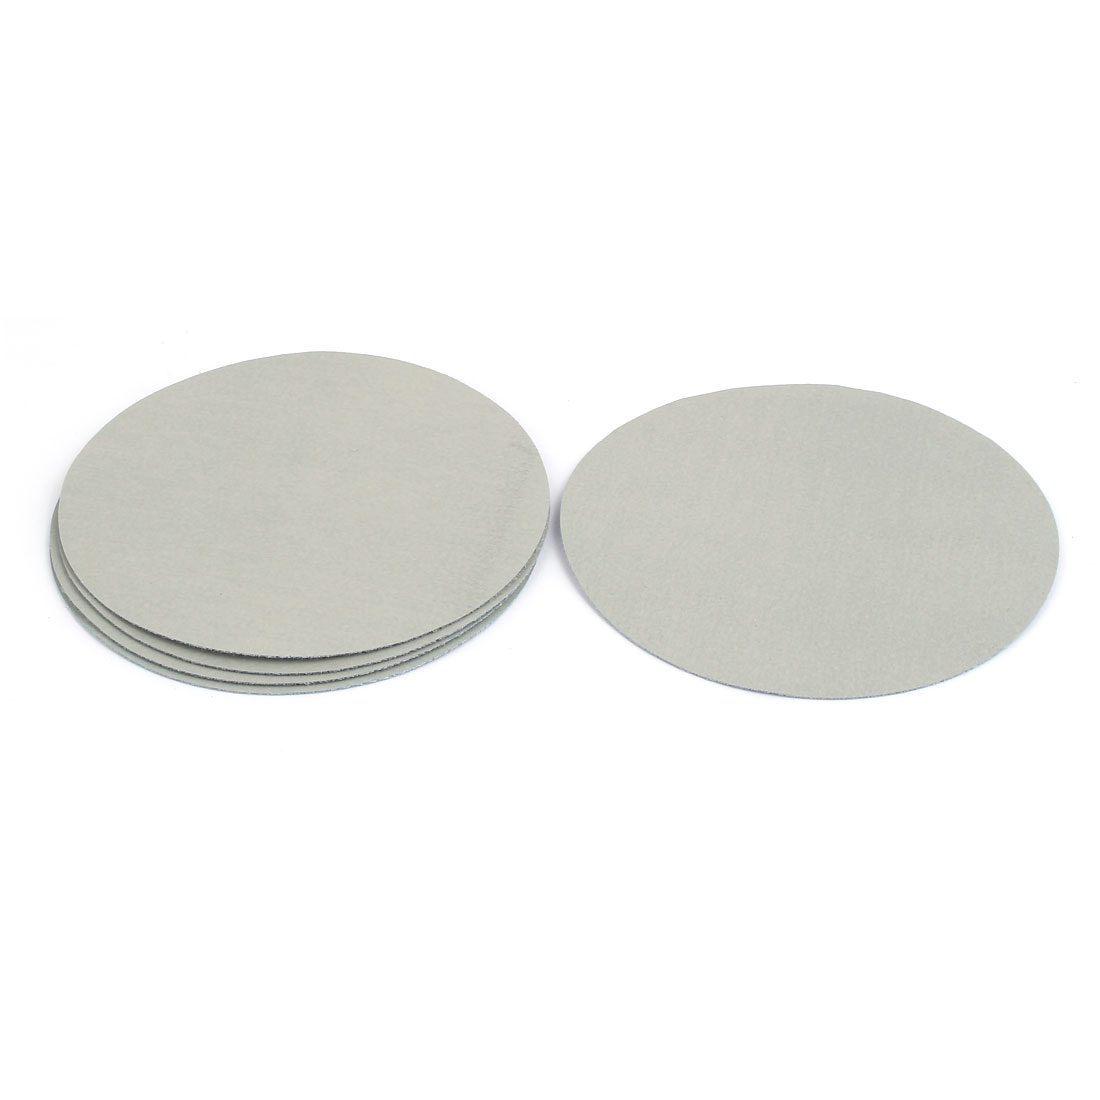 "5000 Grit 5"" Diameter Sandpaper Hook Loop Sanding Disc 5 Pcs"